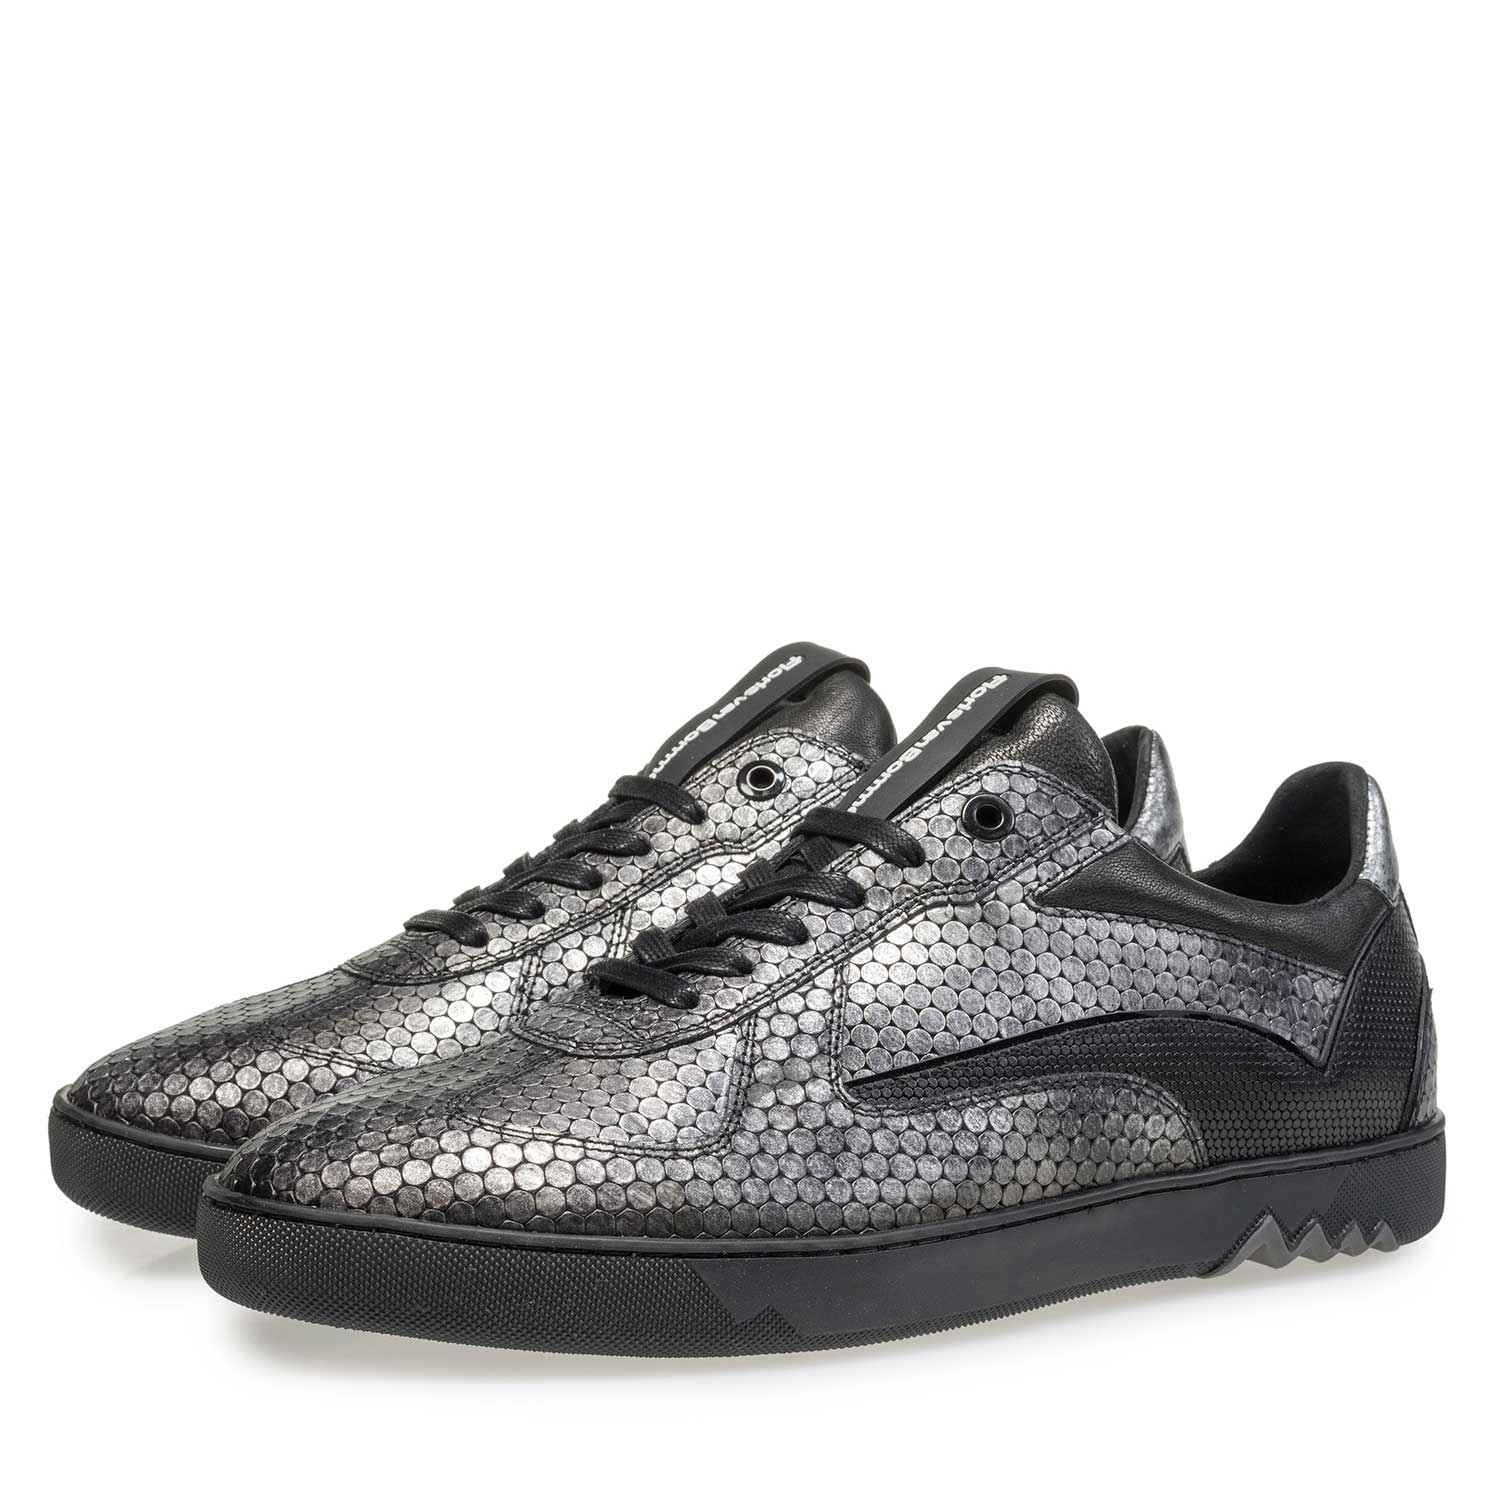 16242/12 - Grey leather sneaker with metallic print